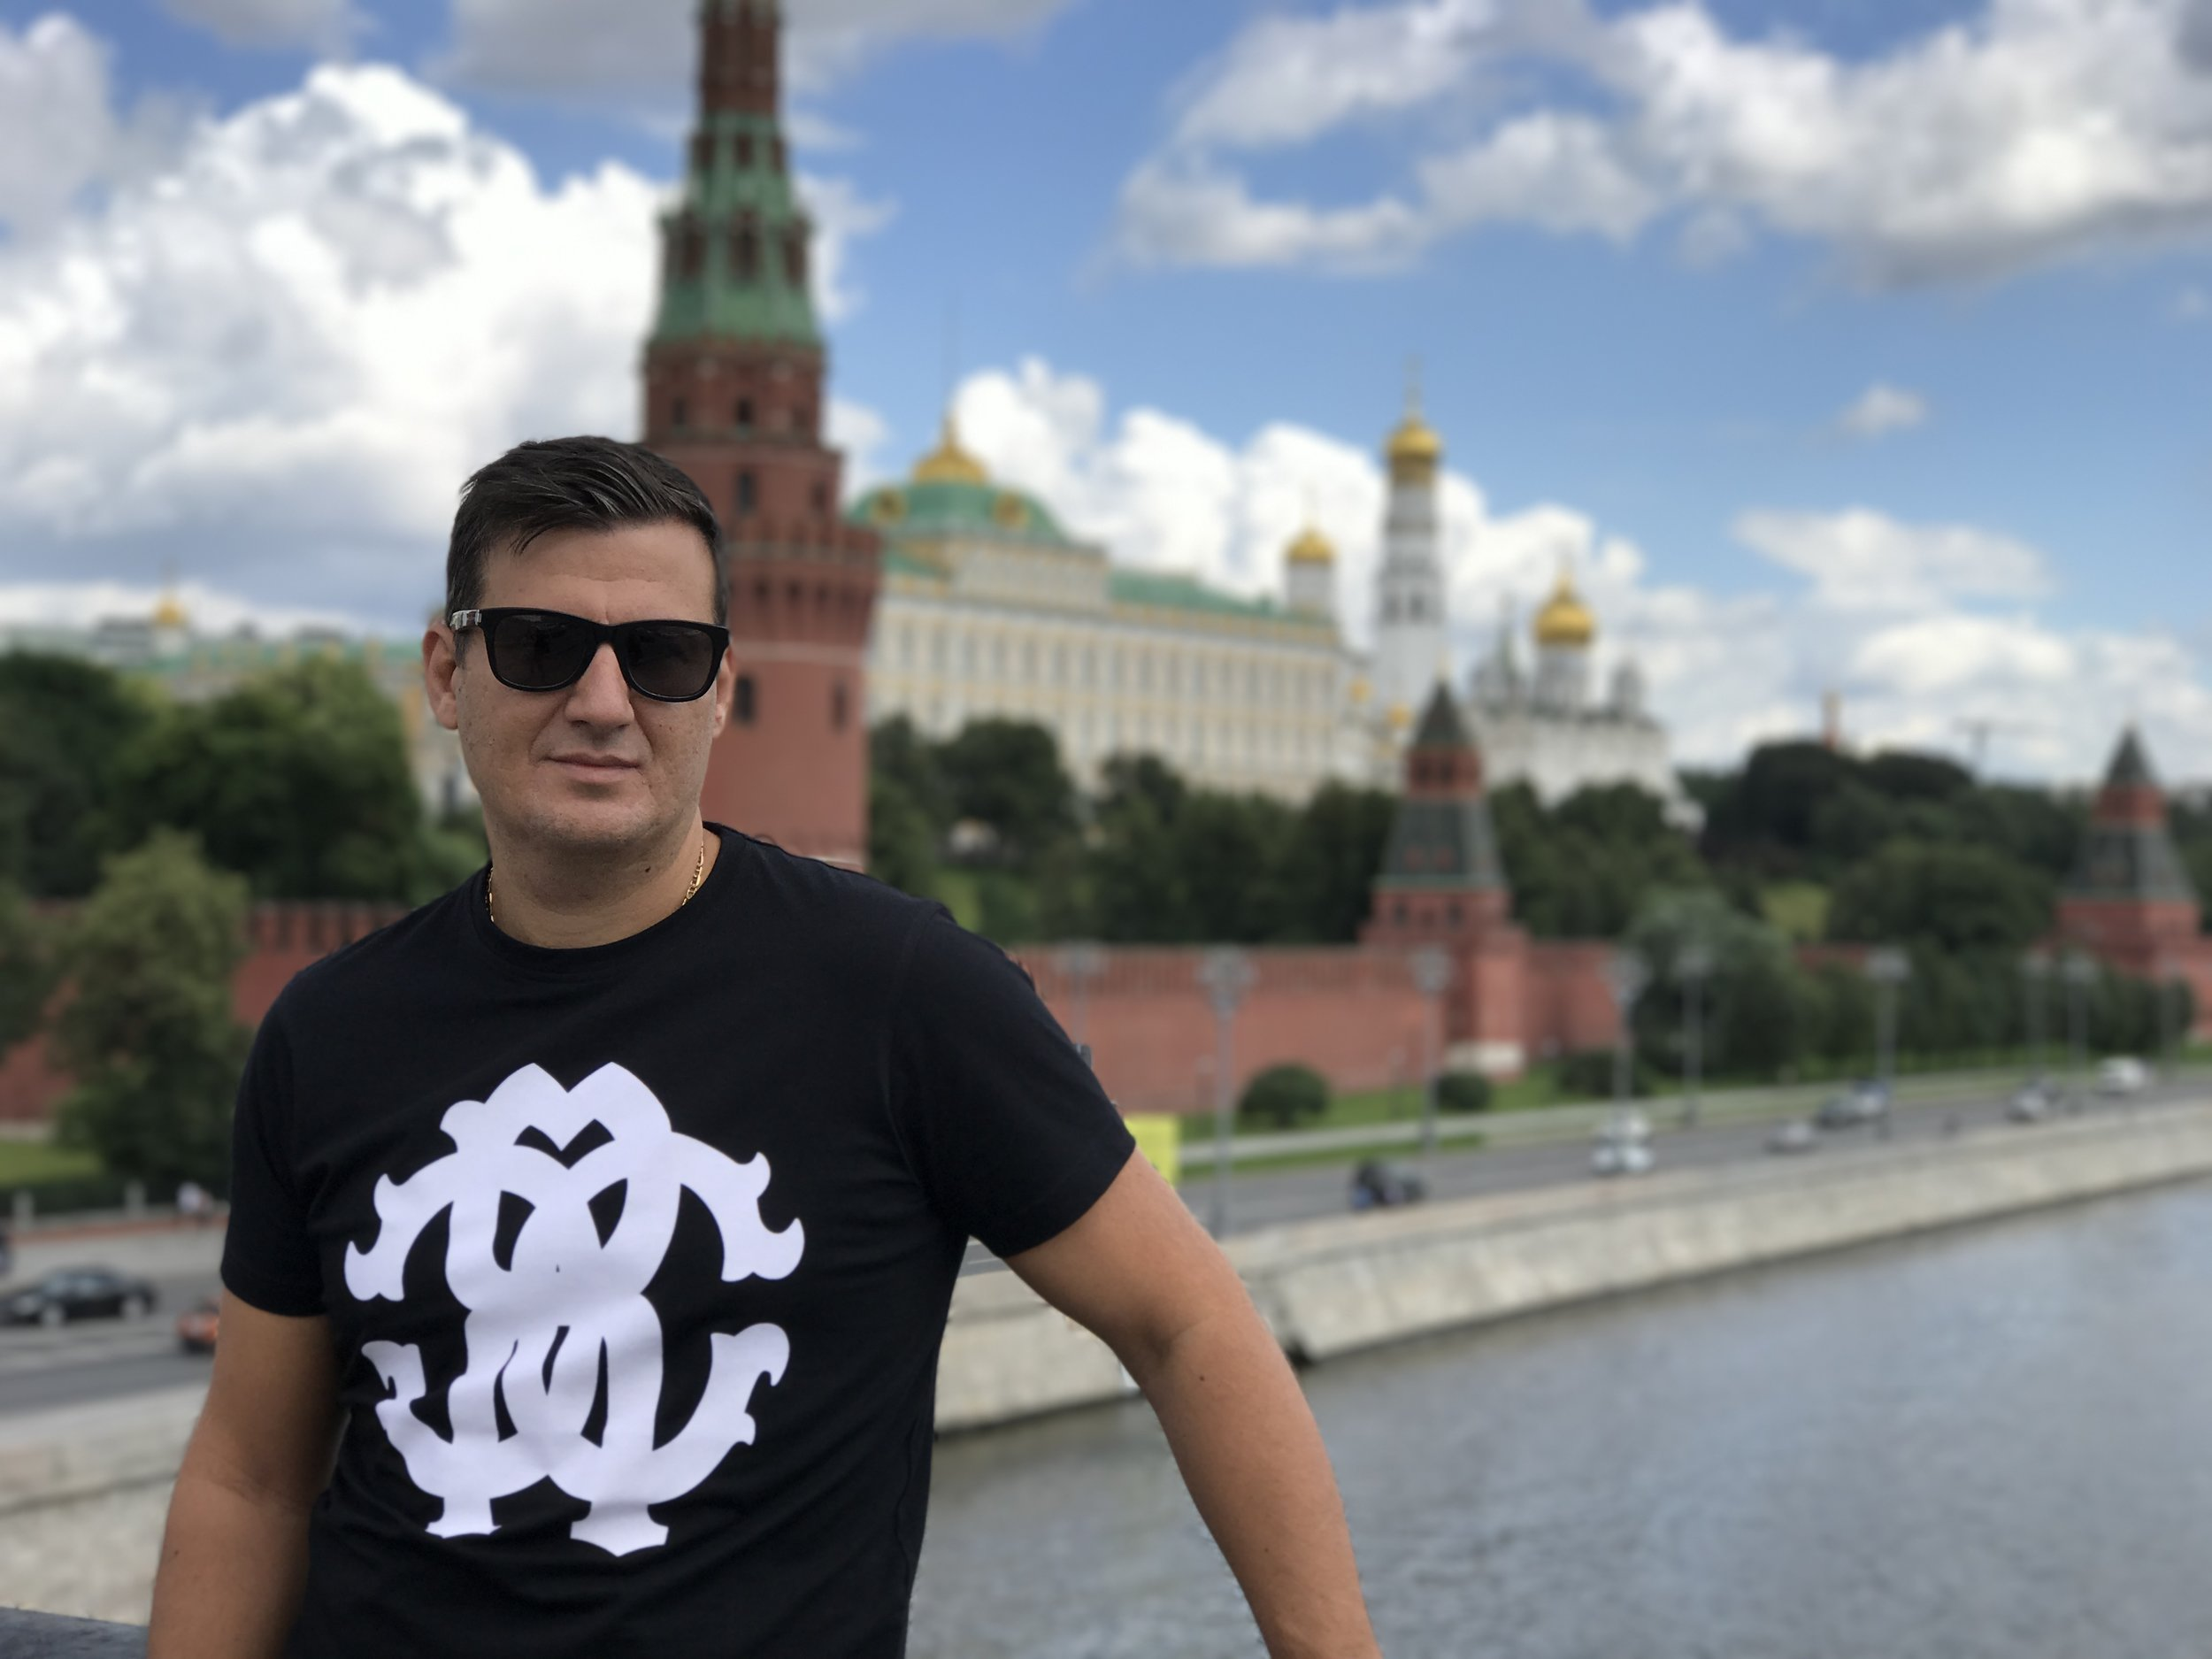 Sergey Krayev in Moscow overlooking the Kremlin